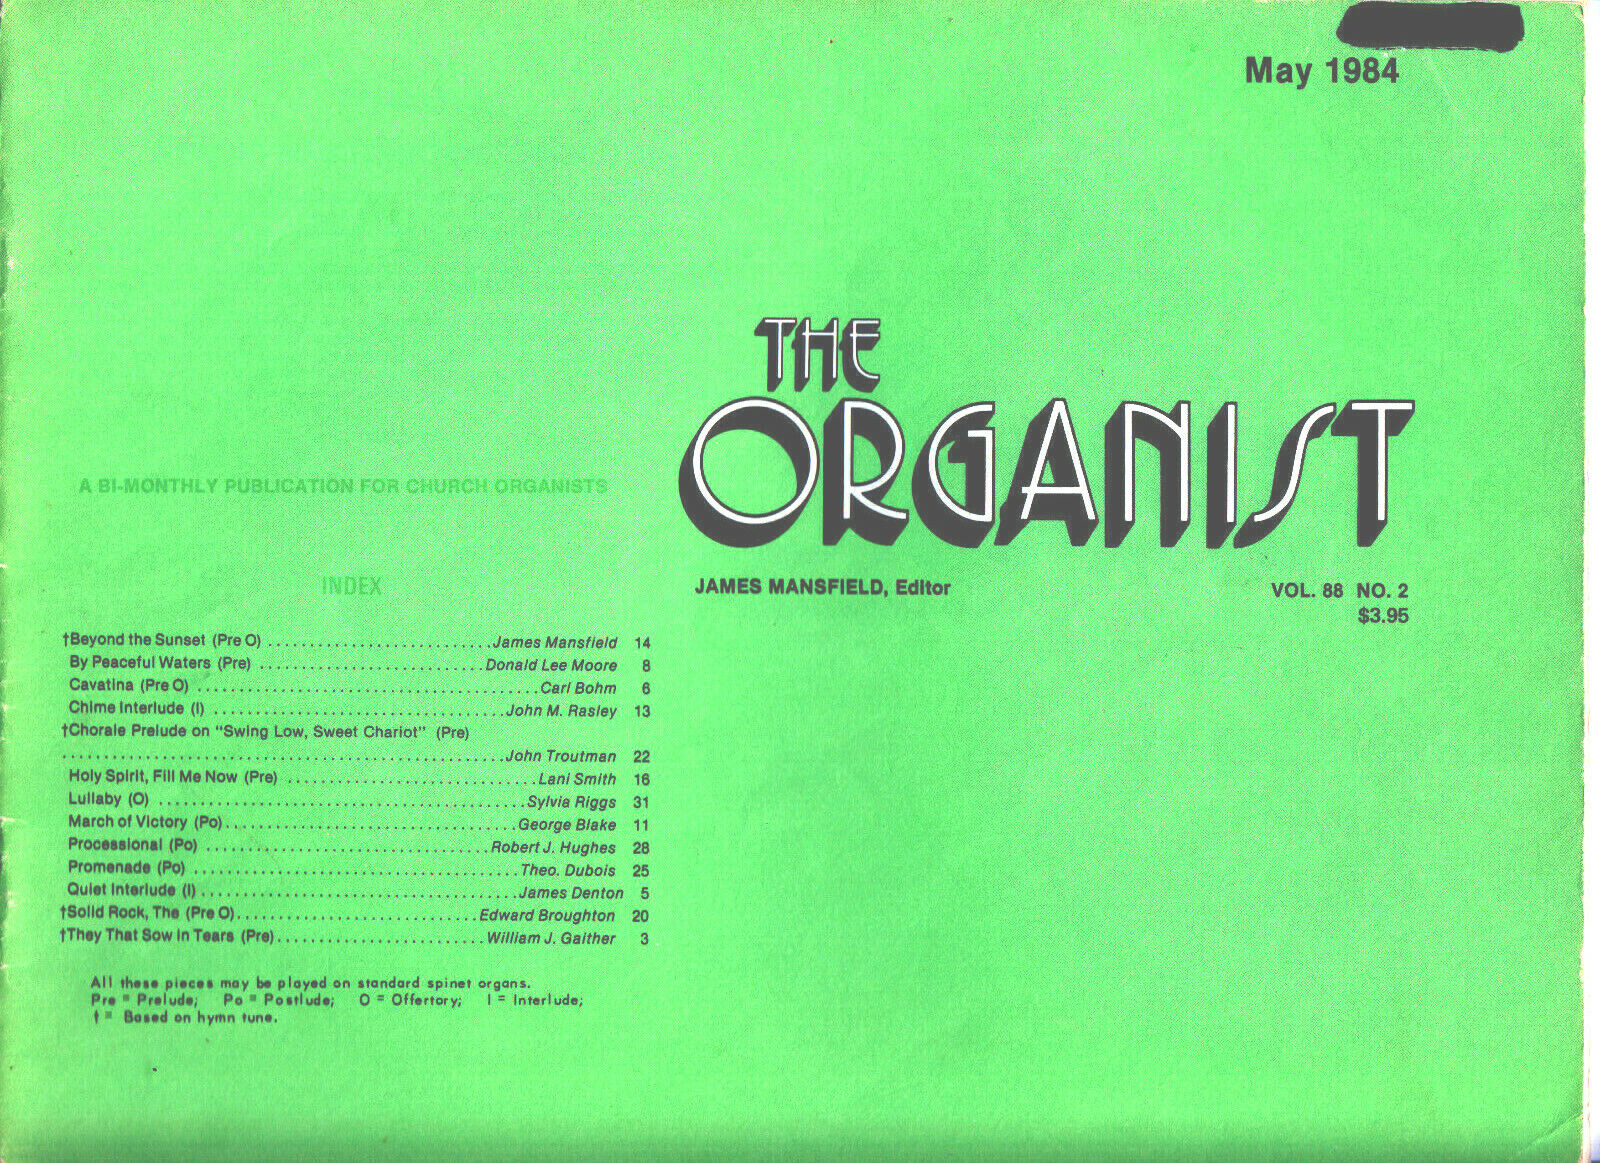 ORGAN MUSIC - THE ORGANIST - MAY 1984 - $4.99